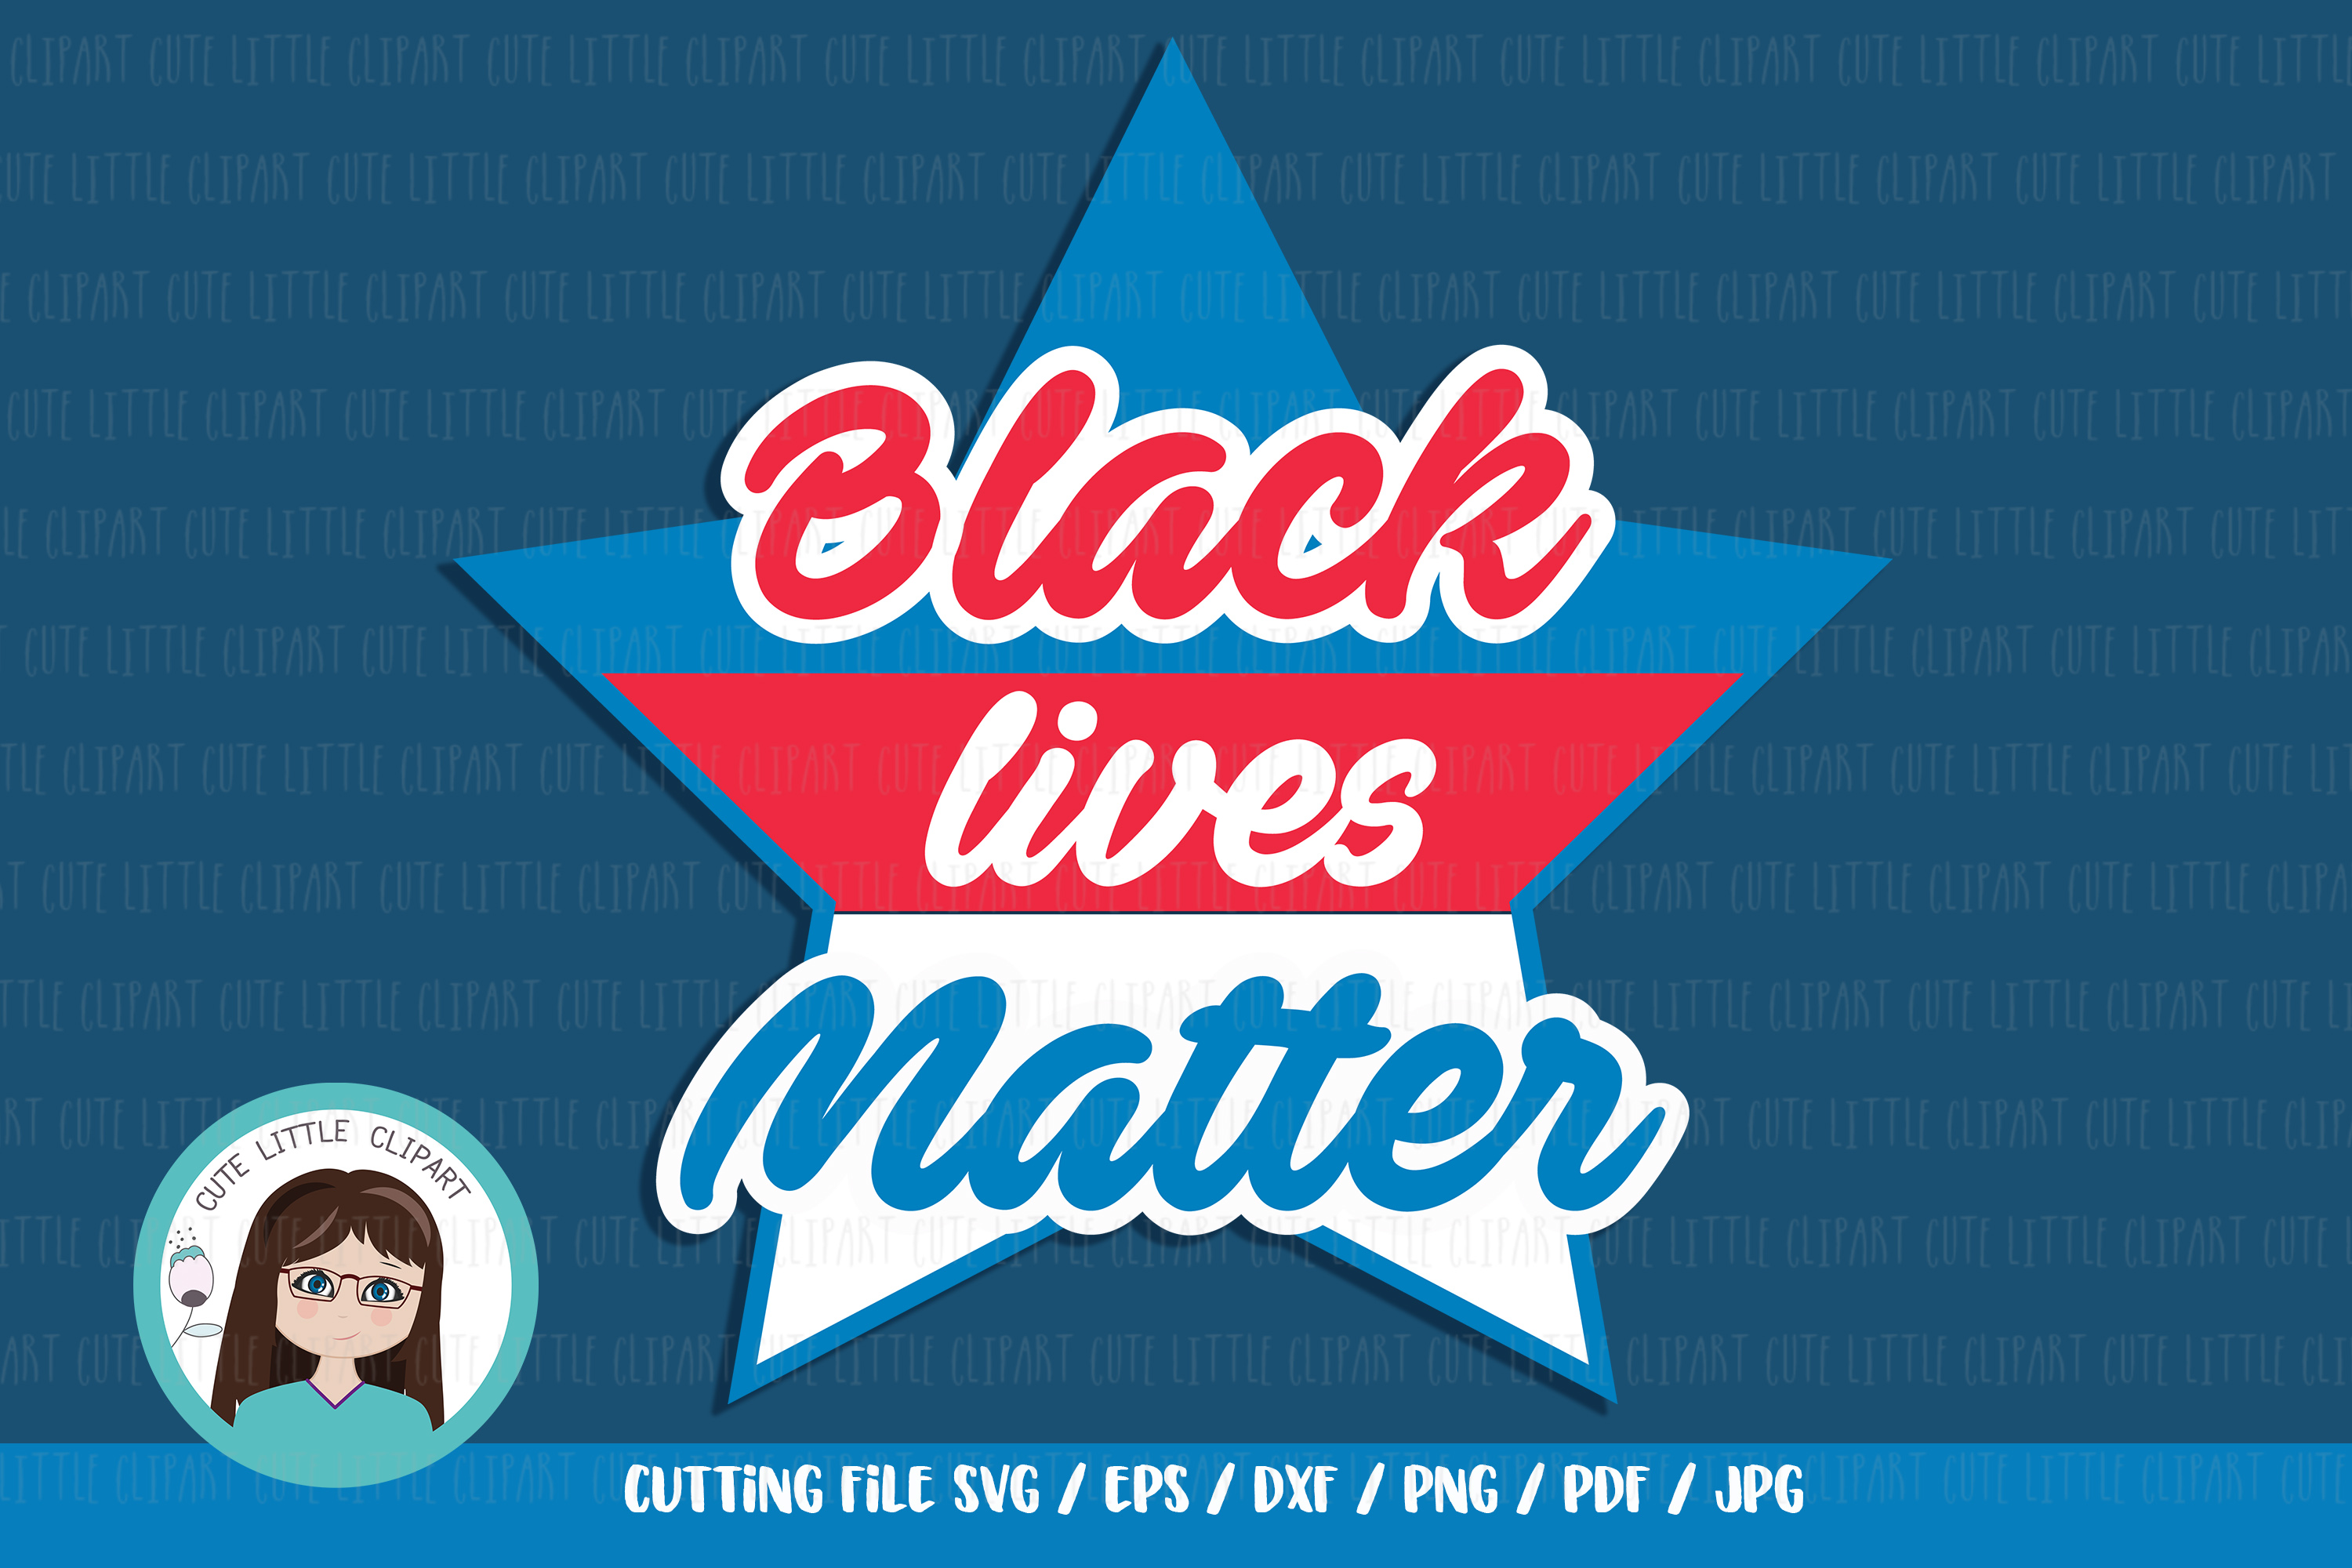 Download Free Black Lives Matter Graphic By Cutelittleclipart Creative Fabrica for Cricut Explore, Silhouette and other cutting machines.